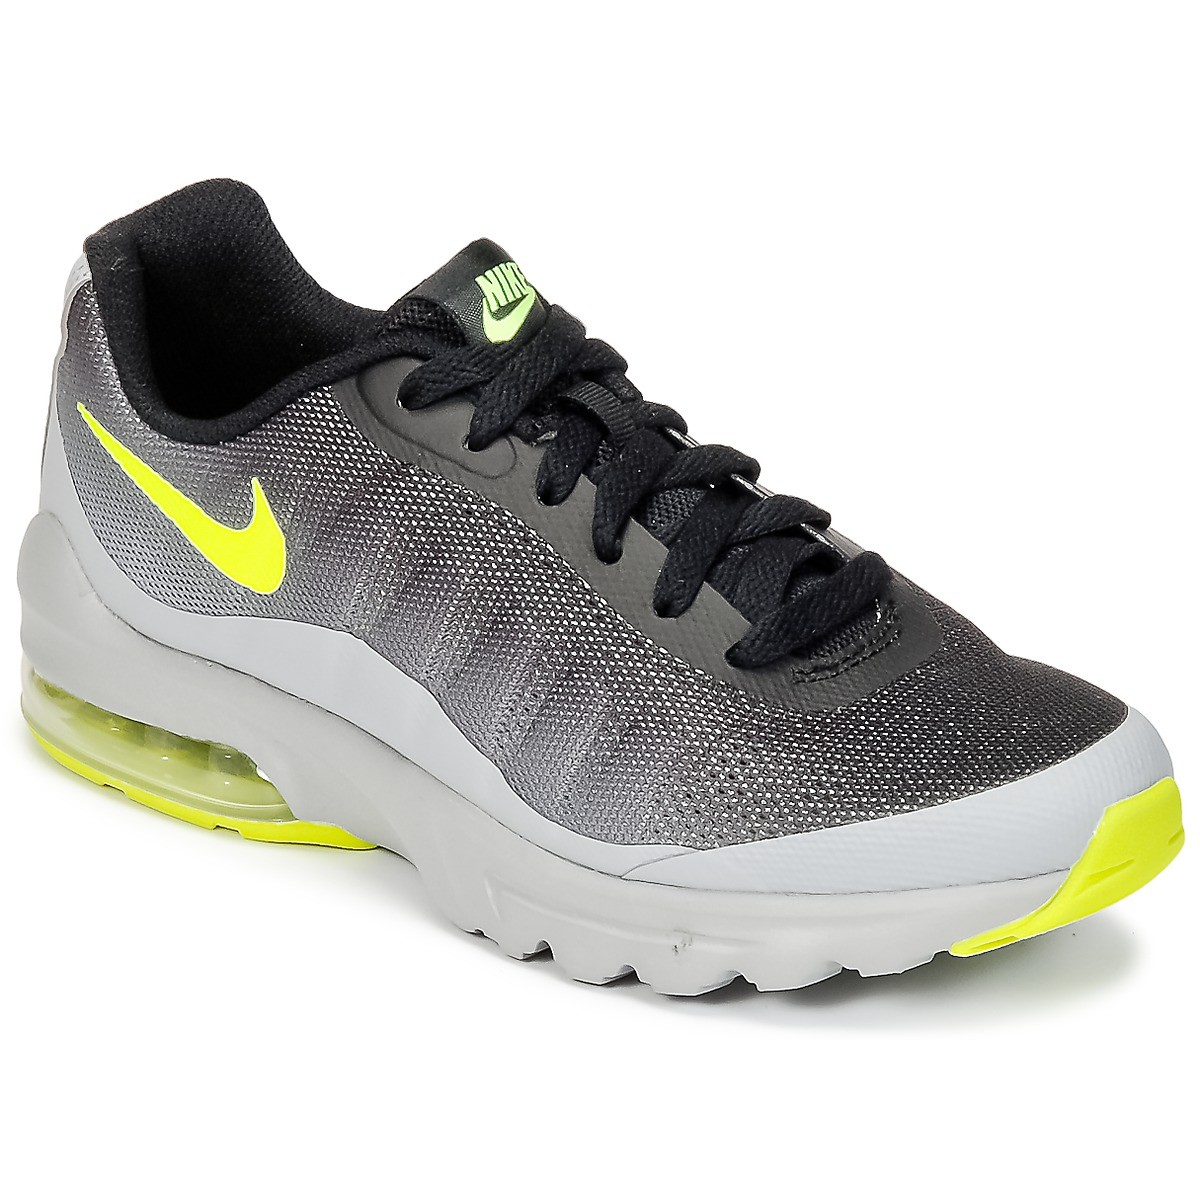 23444d08f59 nike chaussures garcon